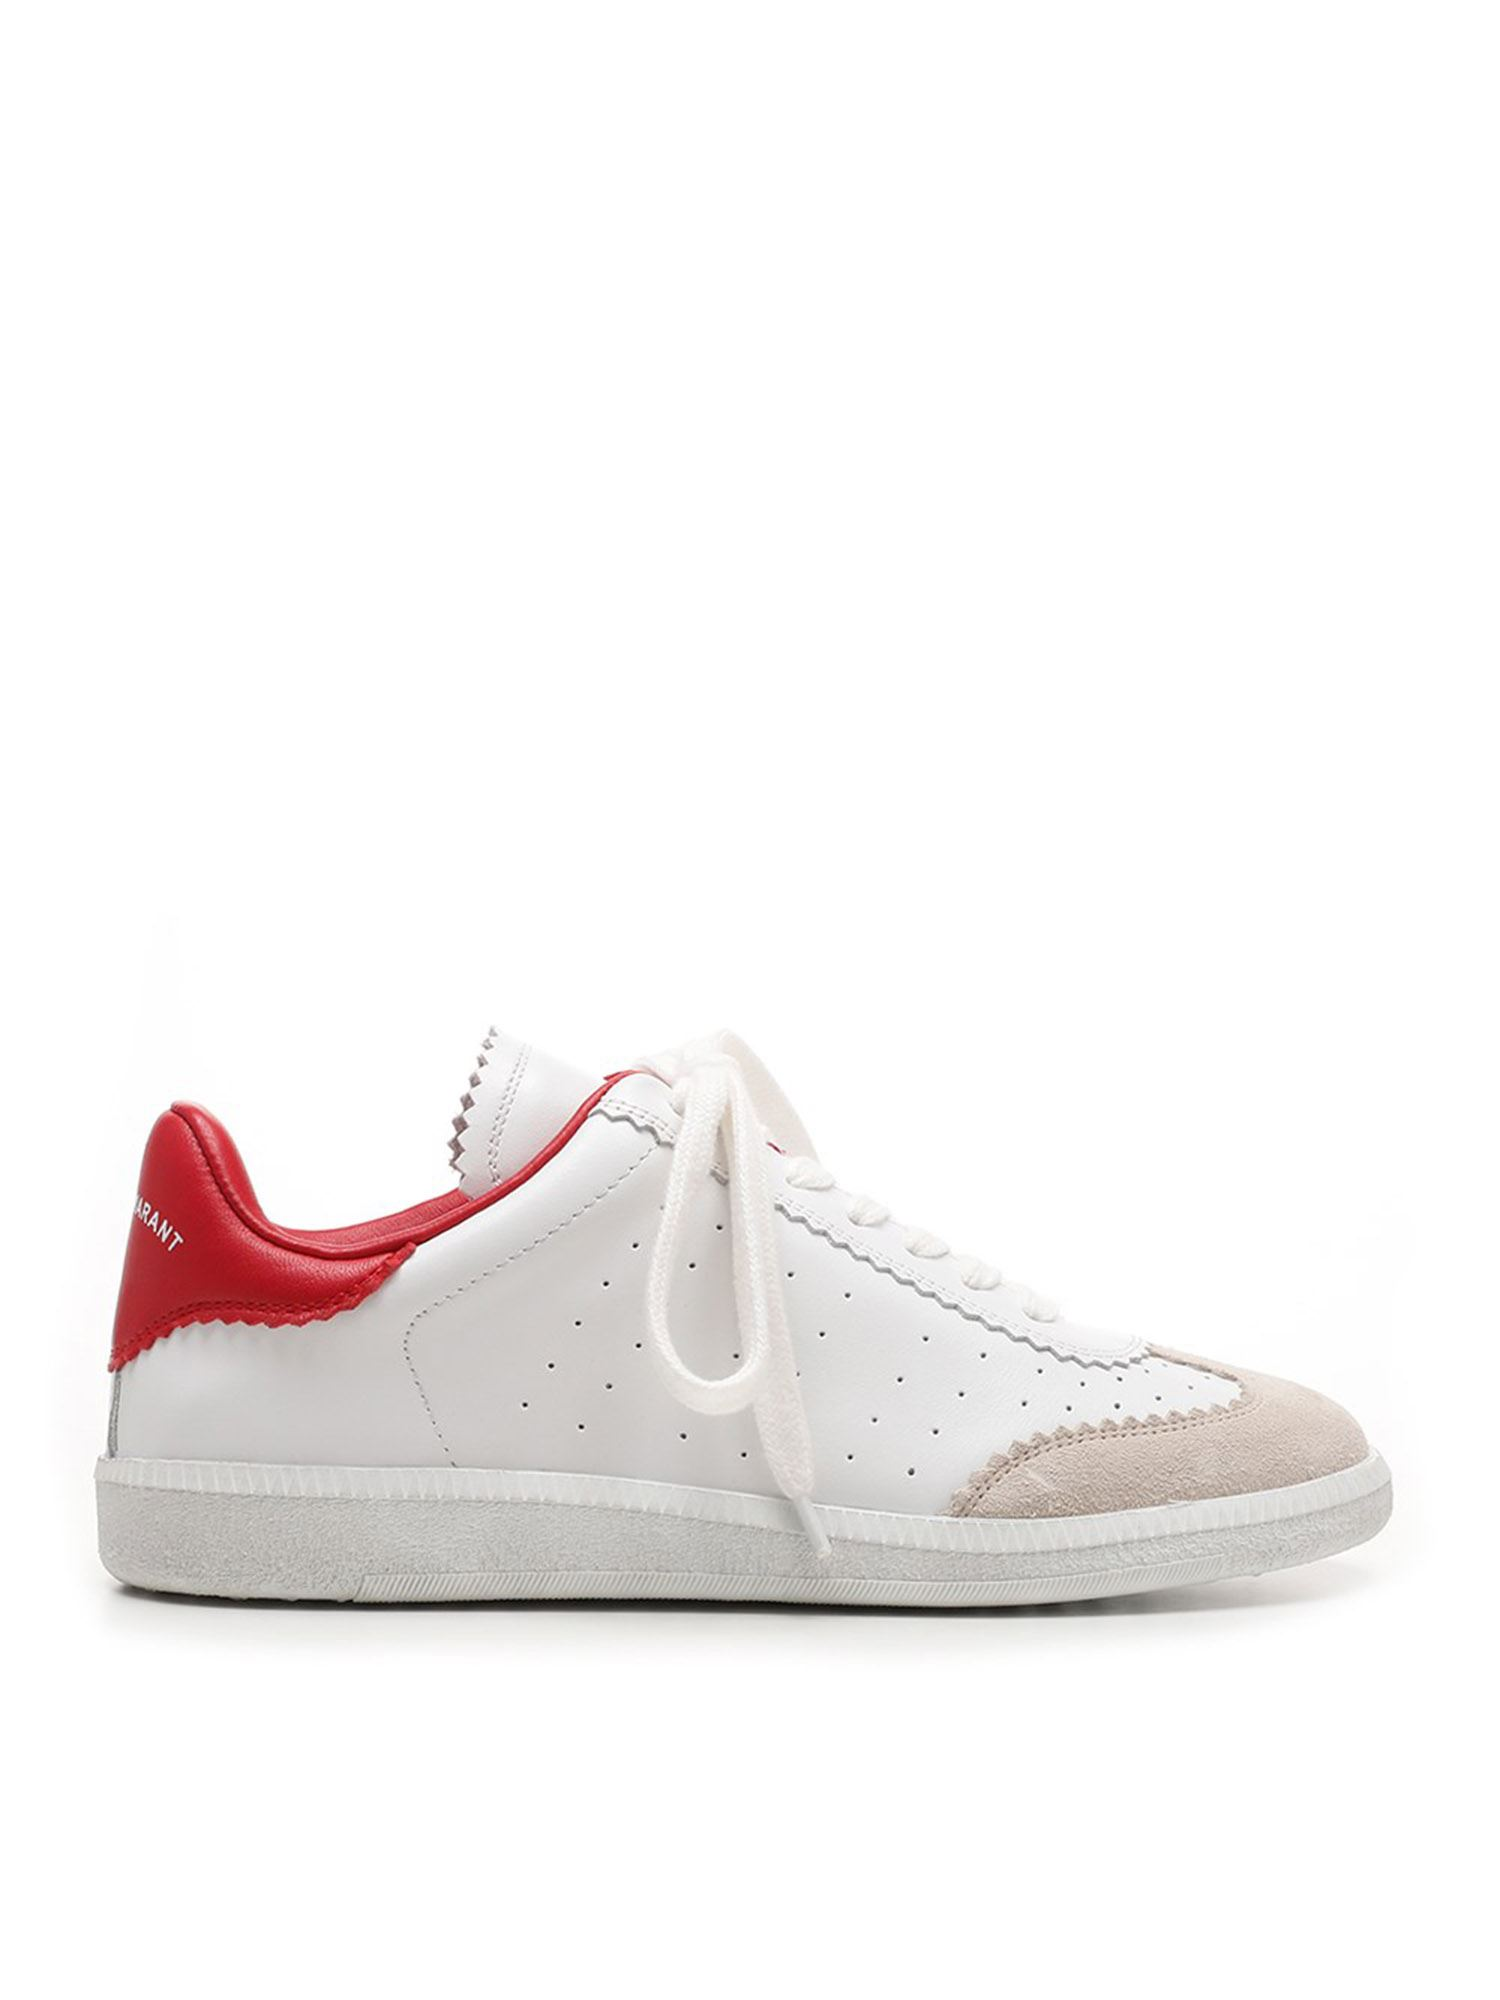 Isabel Marant ISABEL MARANT BRYCE SNEAKERS IN RED AND WHITE